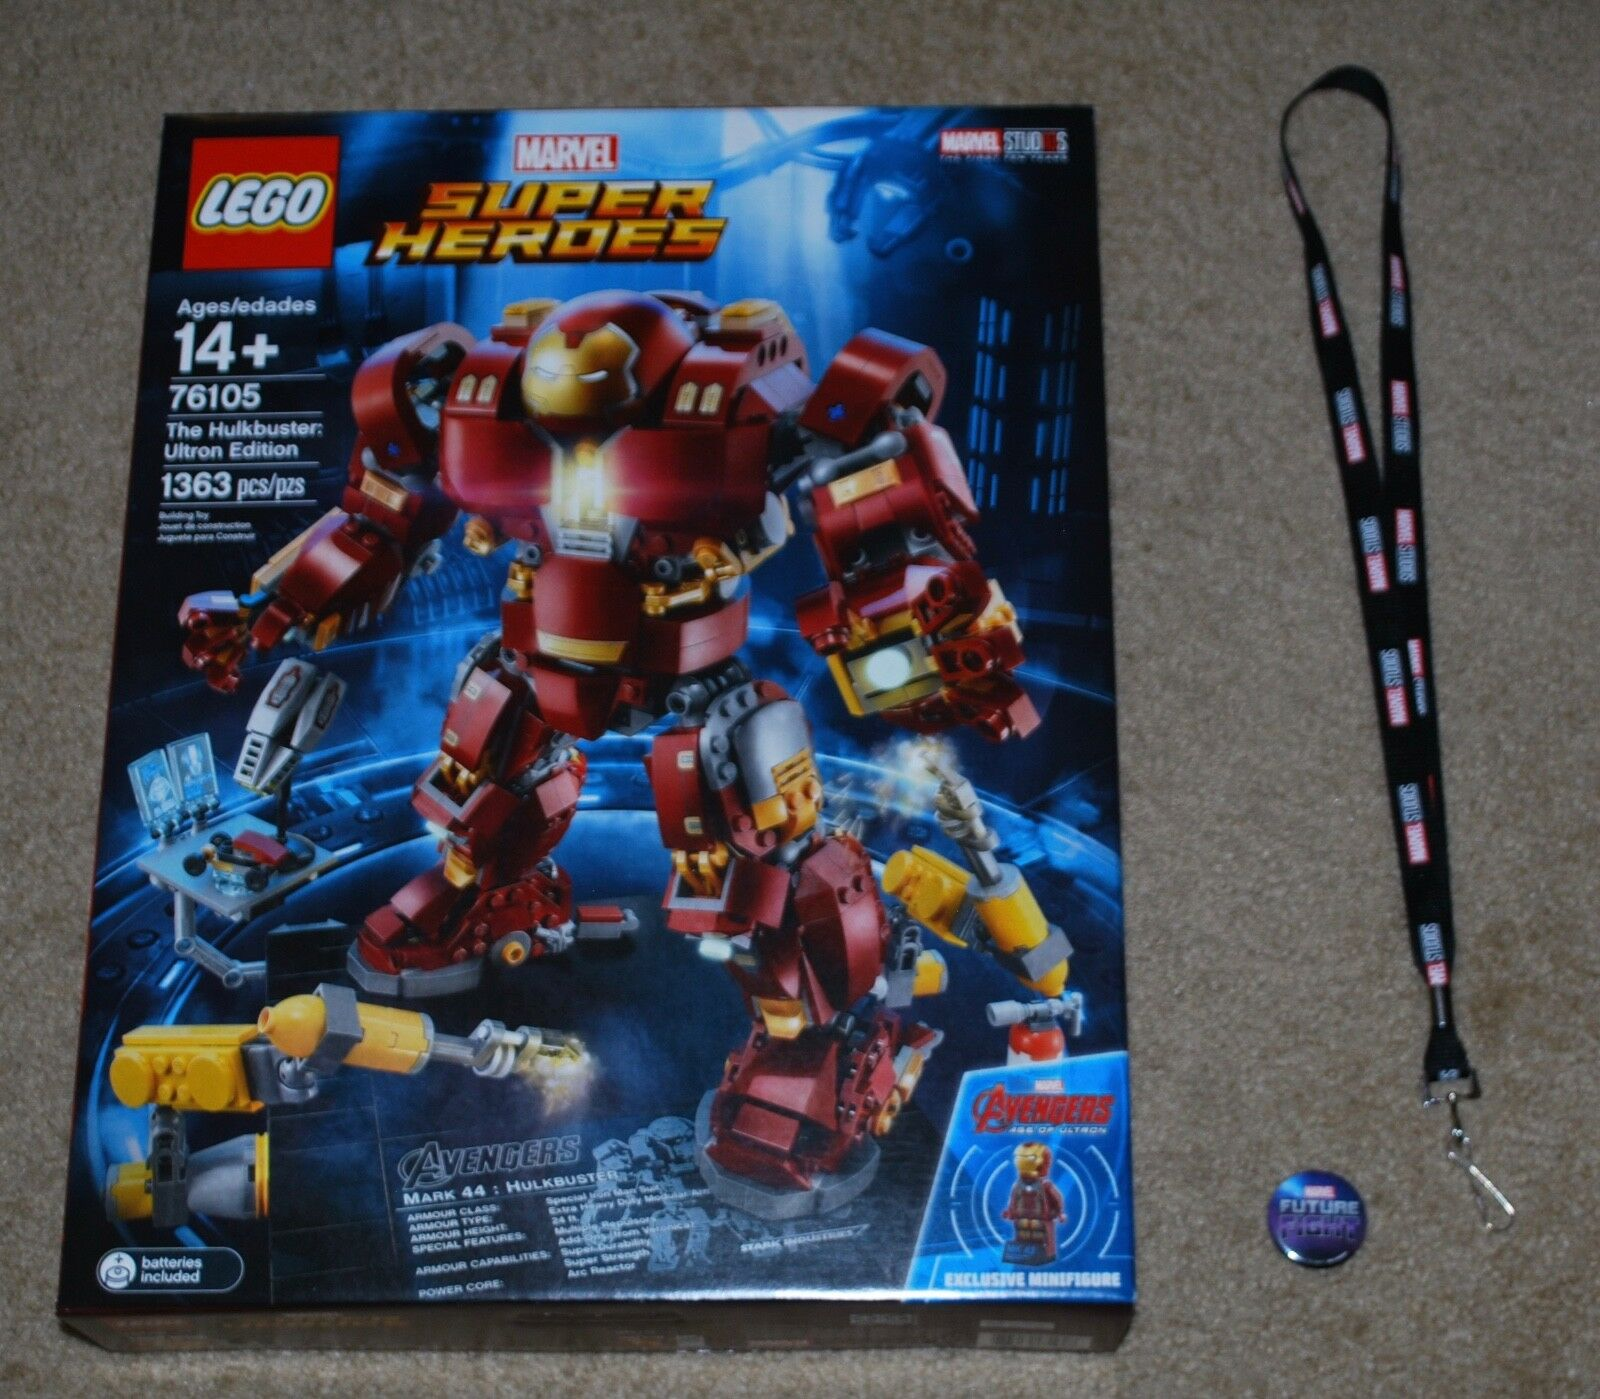 LEGO Marvel Super Heroes Heroes Heroes 2018 The Hulkbuster: Ultron Edition & SDCC LANYARD 8728c9